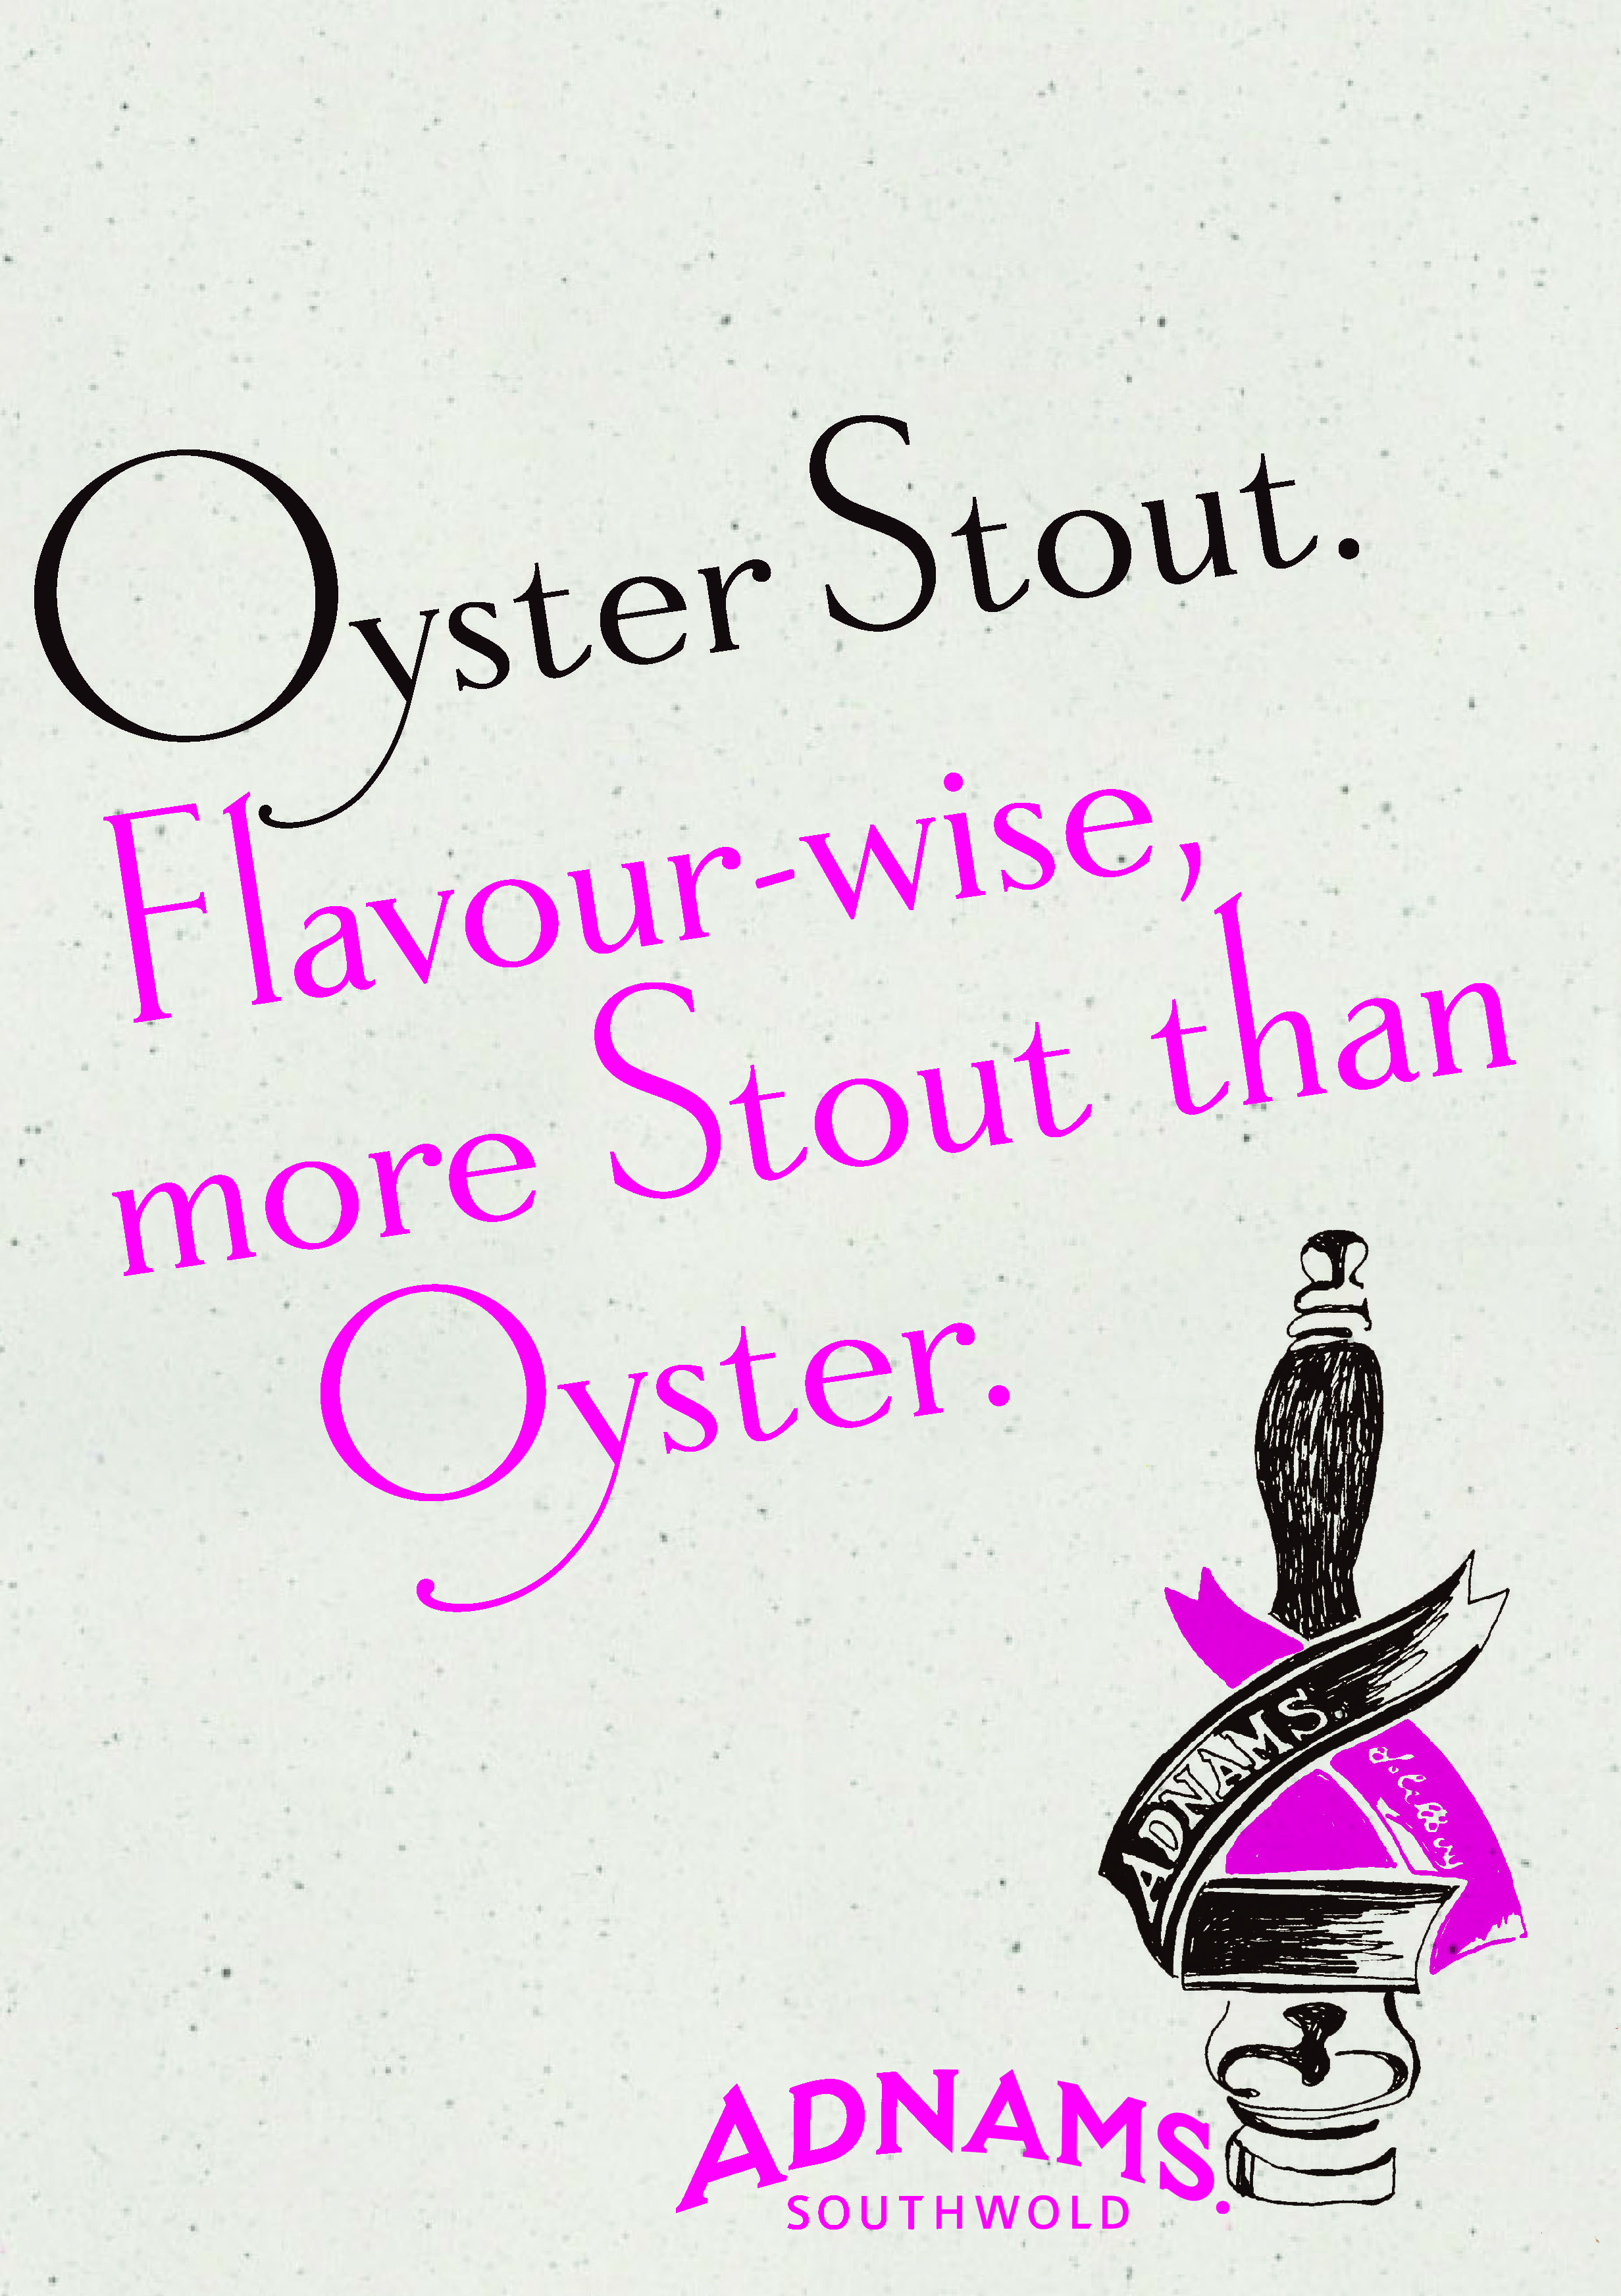 'Flavour-wise' Oyster Stout, Adnams 2.jpg